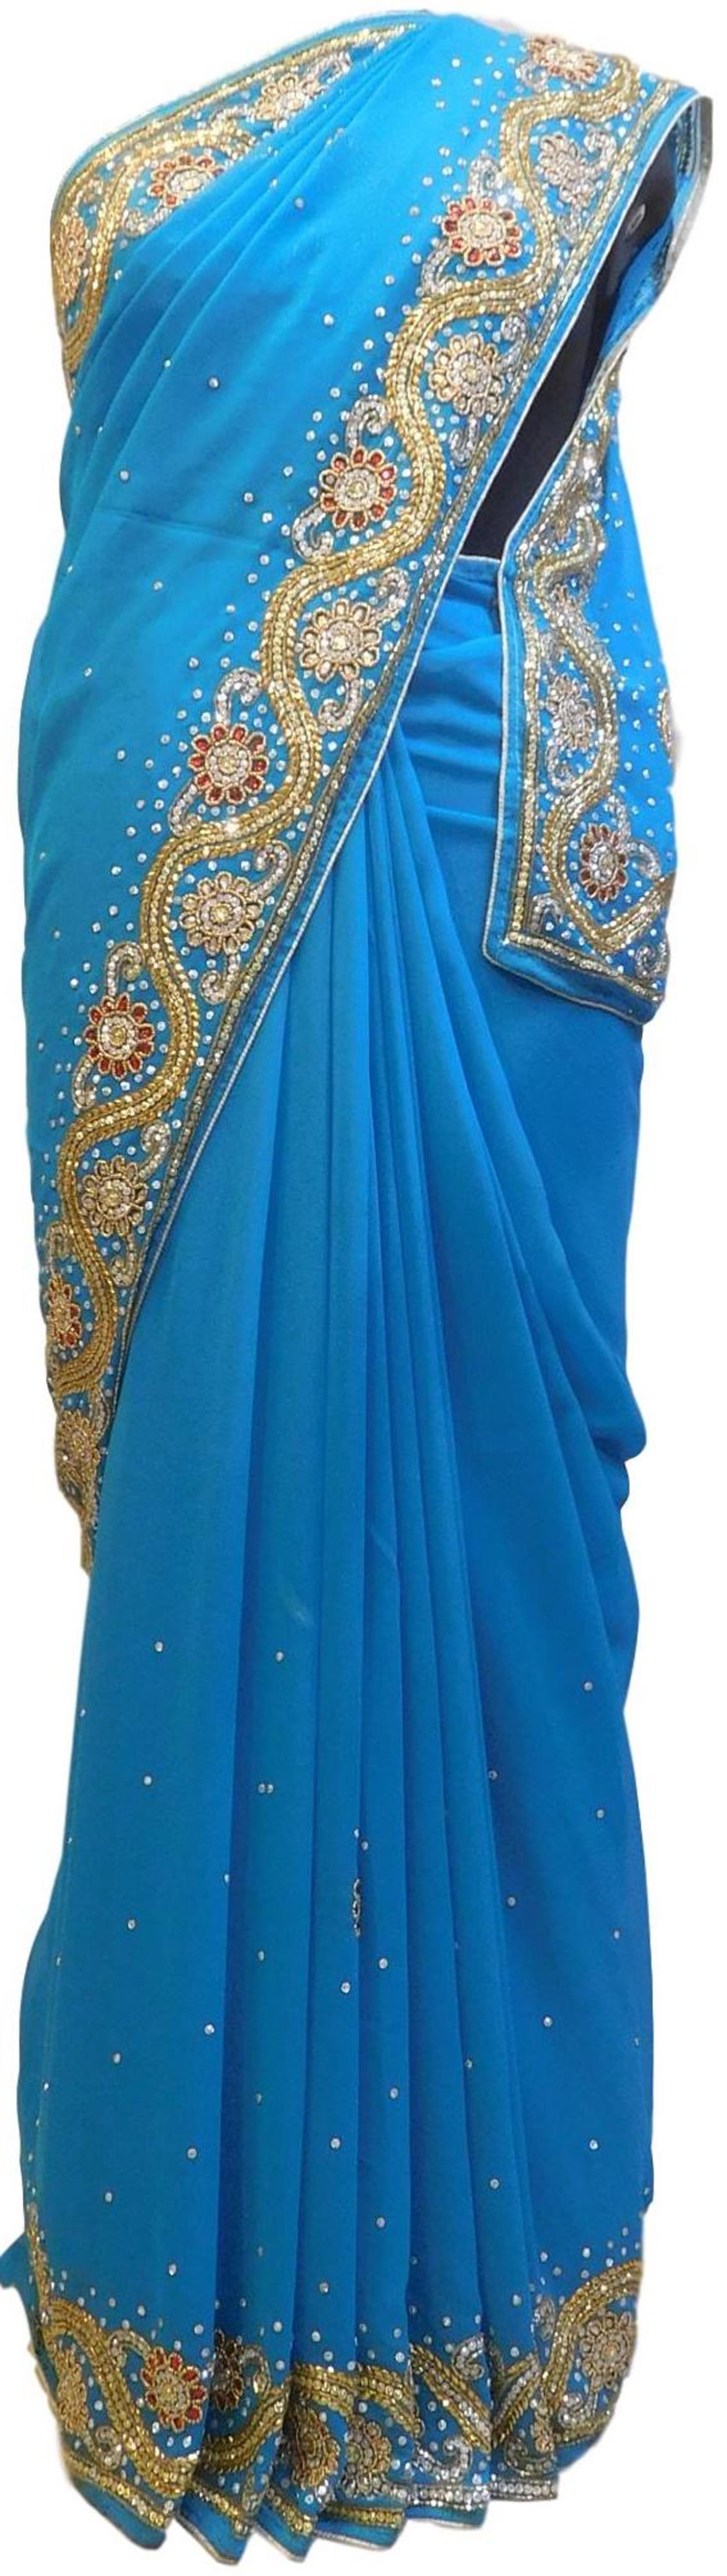 Blue Designer Wedding Partywear Georgette Hand Embroidery Cutdana Stone Beads Work Kolkata Saree Sari E360